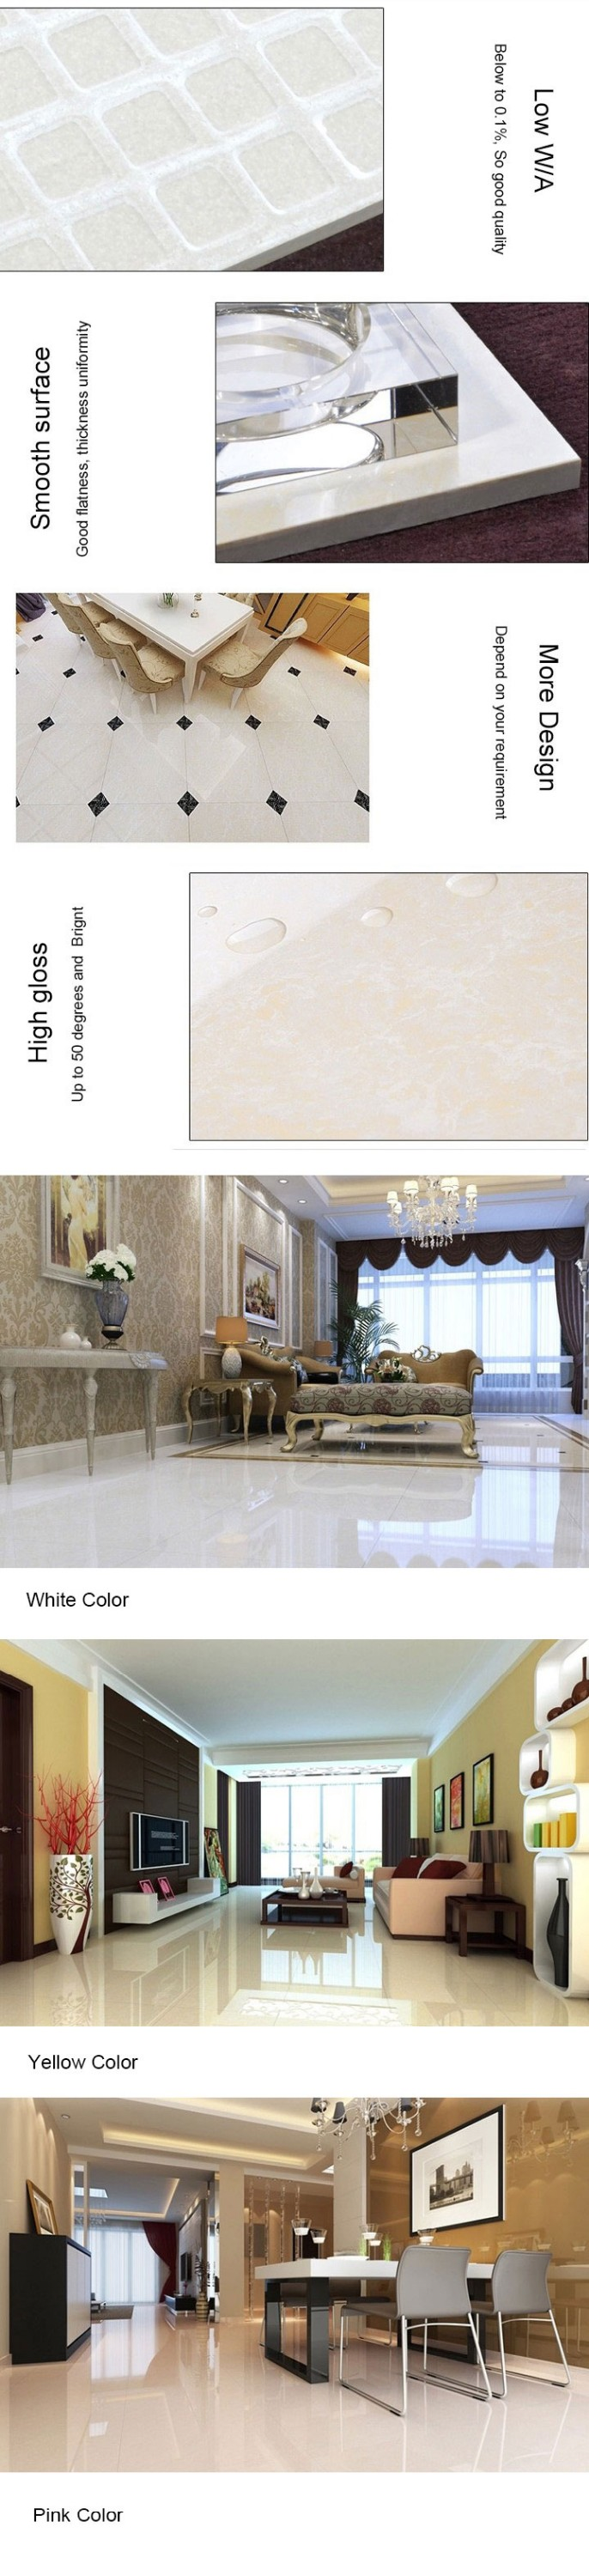 Itemfs2507 raised marbonite marble floor tiles design pictures itemfs2507 raised marbonite marble floor tiles design pictures price dailygadgetfo Choice Image